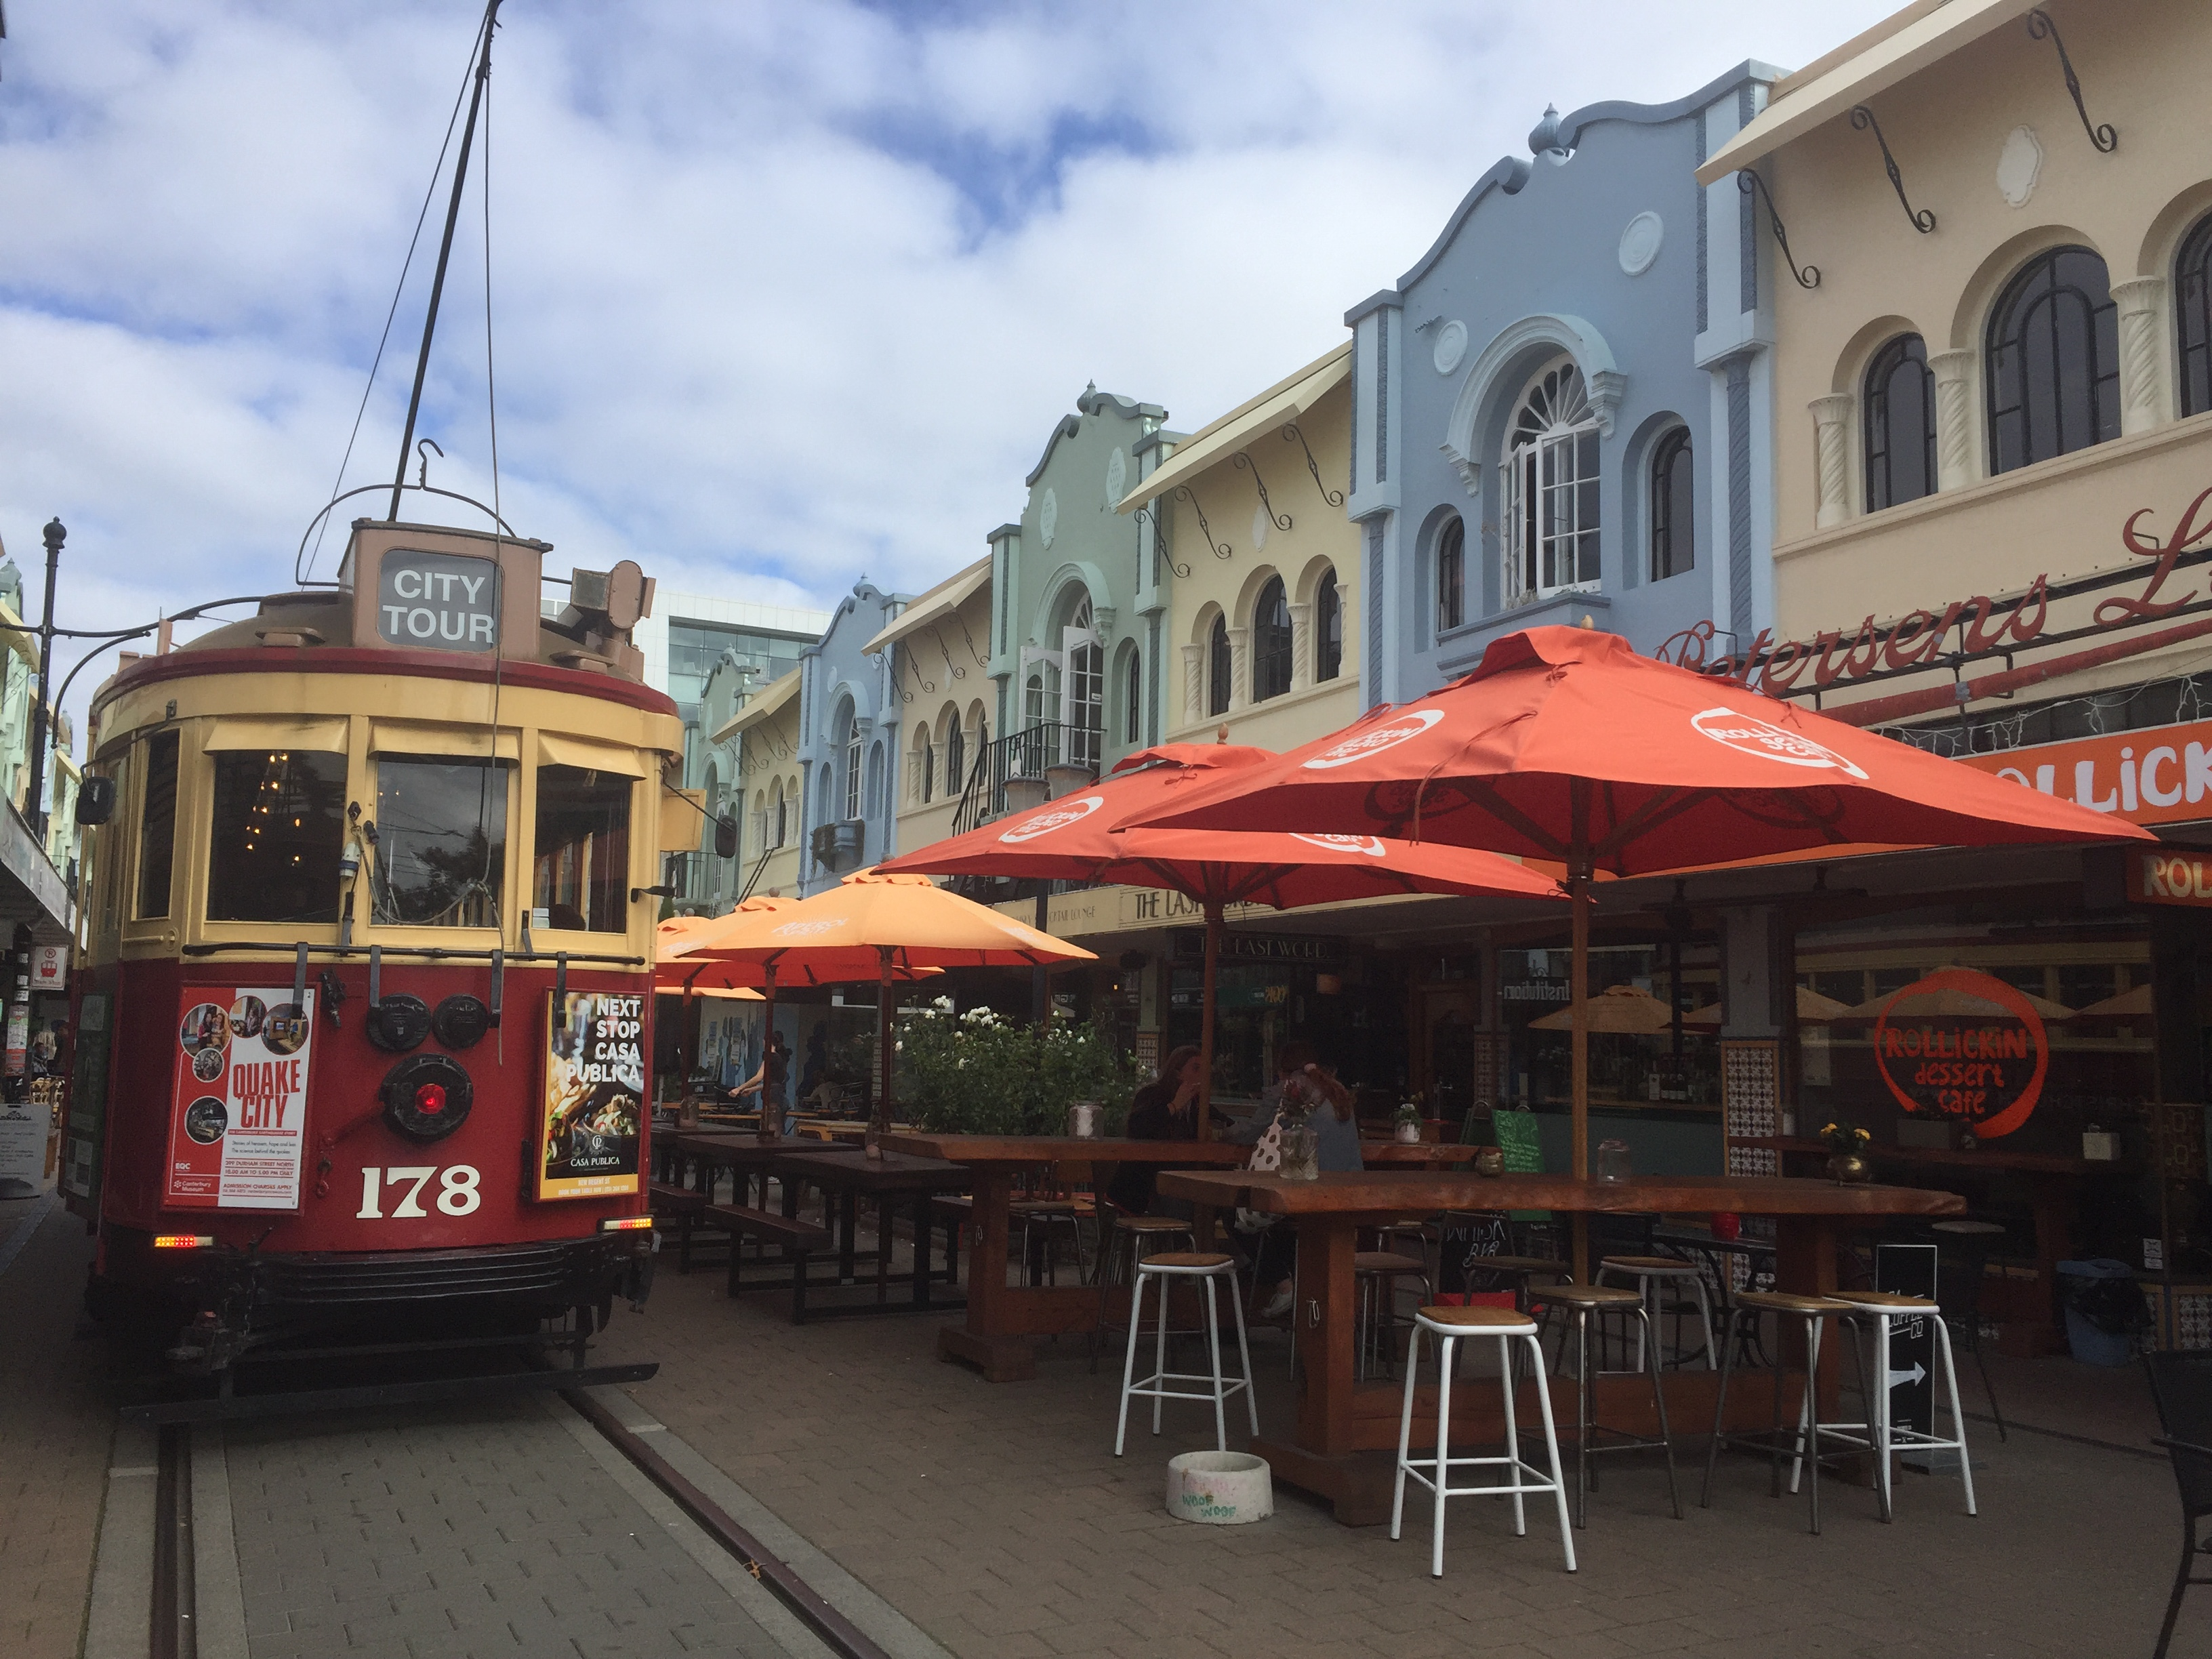 Christchurch New Regent Street NZ cable car in front of colorful umbrellas and houses